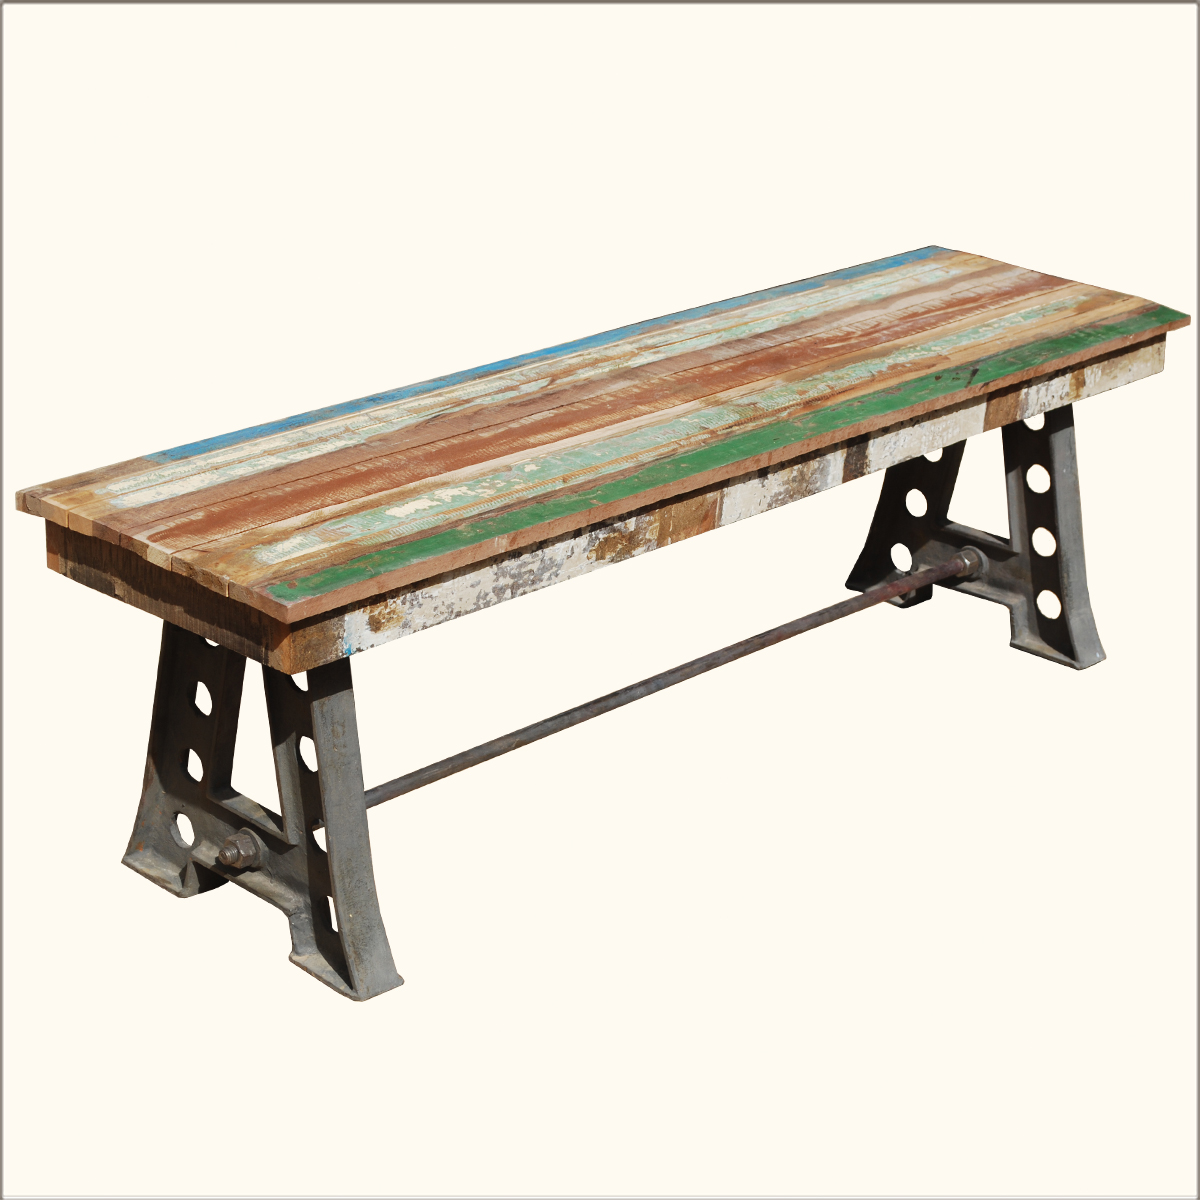 Rustic solid teak wood industrial wrought iron bench for Outdoor furniture benches